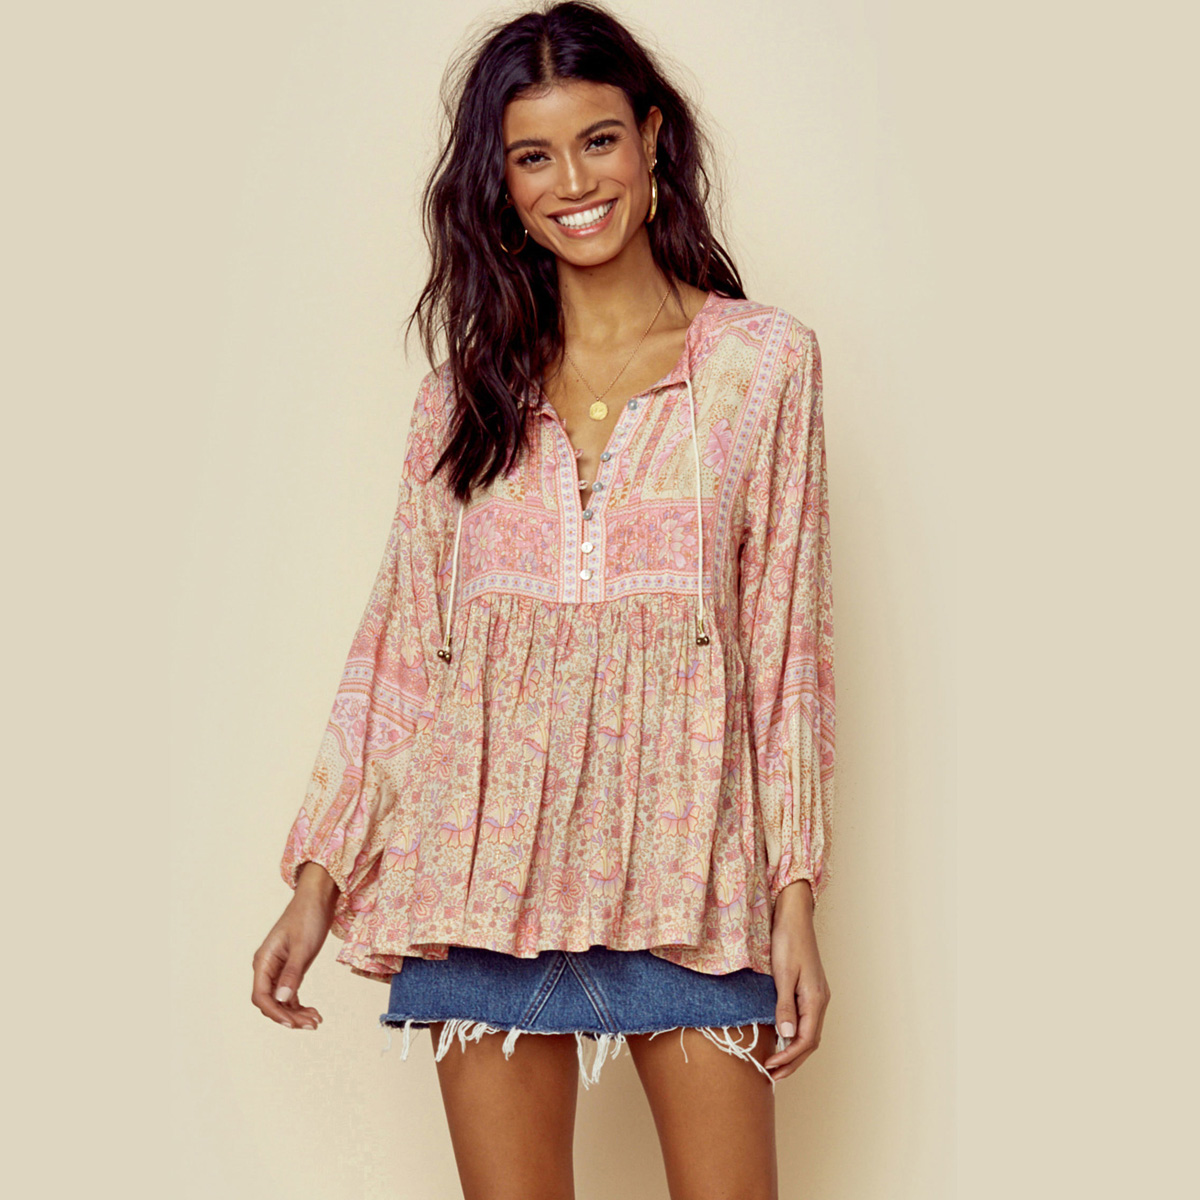 Jastie Gypsy Floral Print   Blouse     Shirt   V-Neck Button Chic Boho   Shirts   Top Long Sleeve Spring Summer Top Women   Blouses   Beach Tops